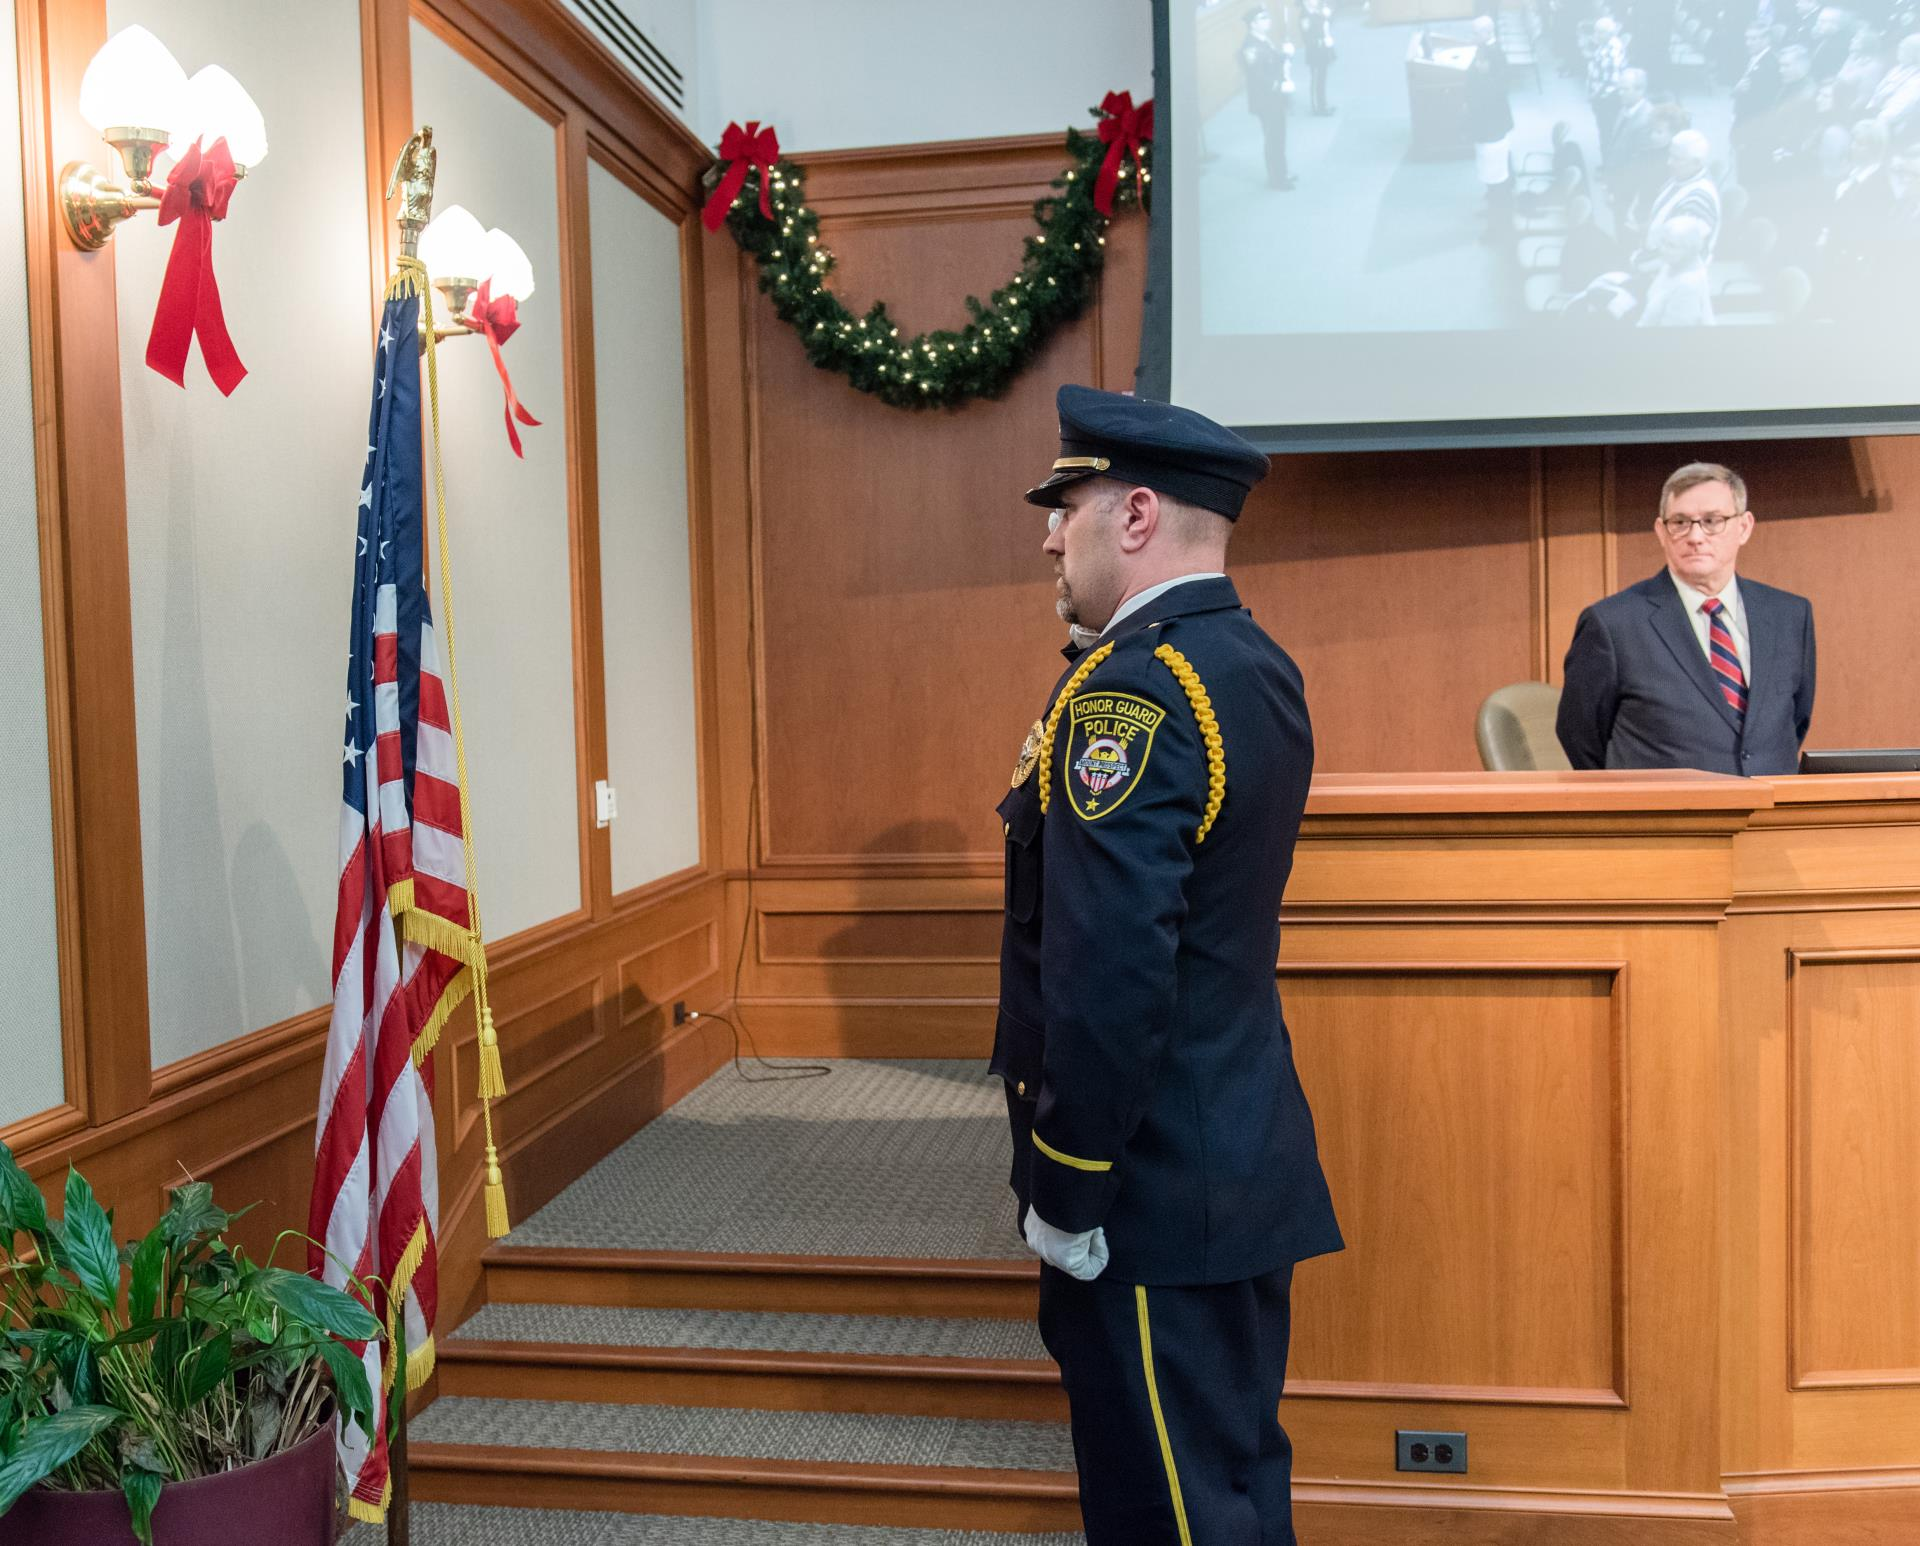 Chief Koziol Swearing-In Ceremony Final-4196